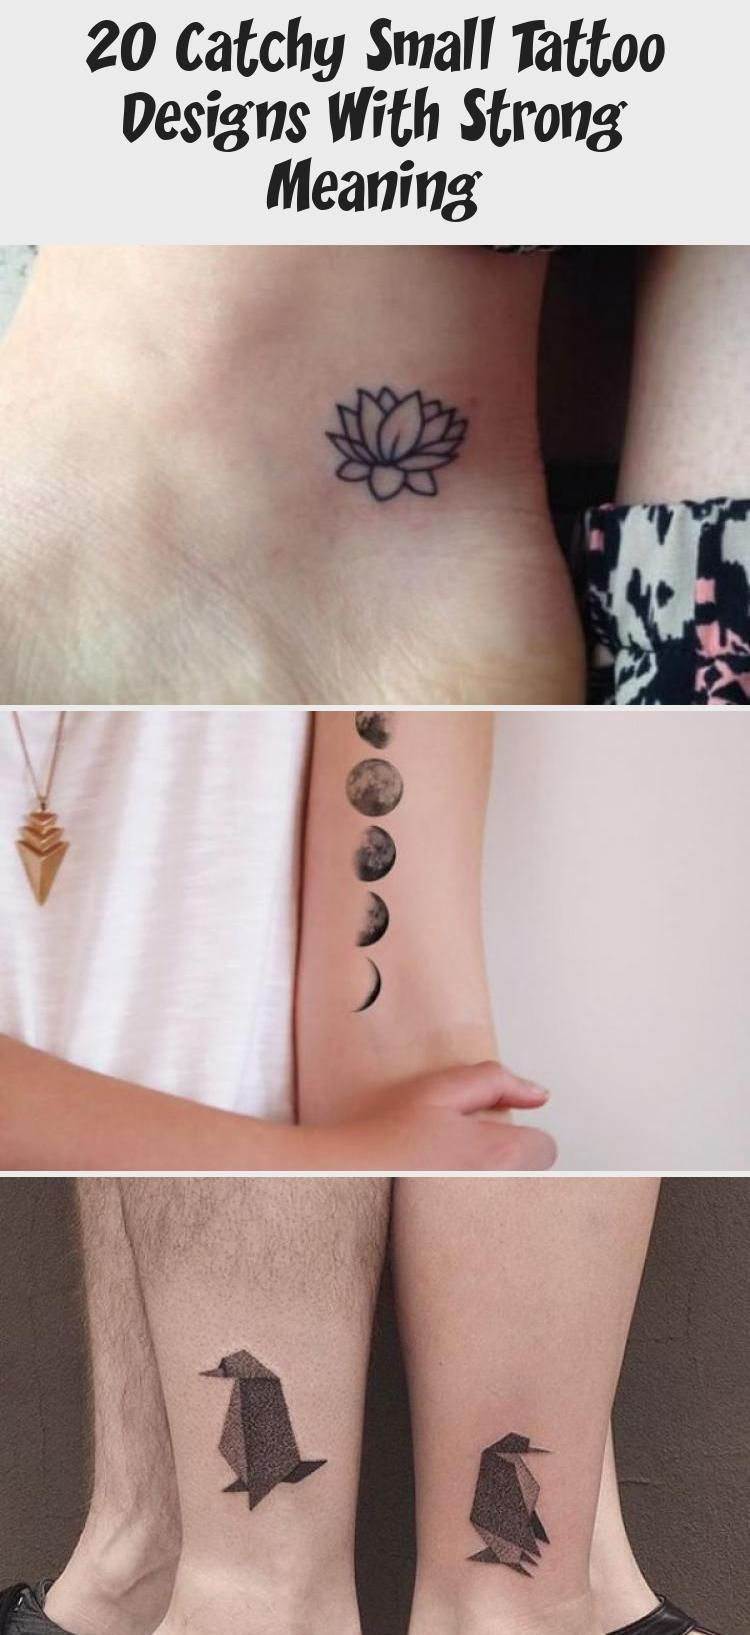 20 Catchy Small Tattoo Designs With Strong Meaning in 2020